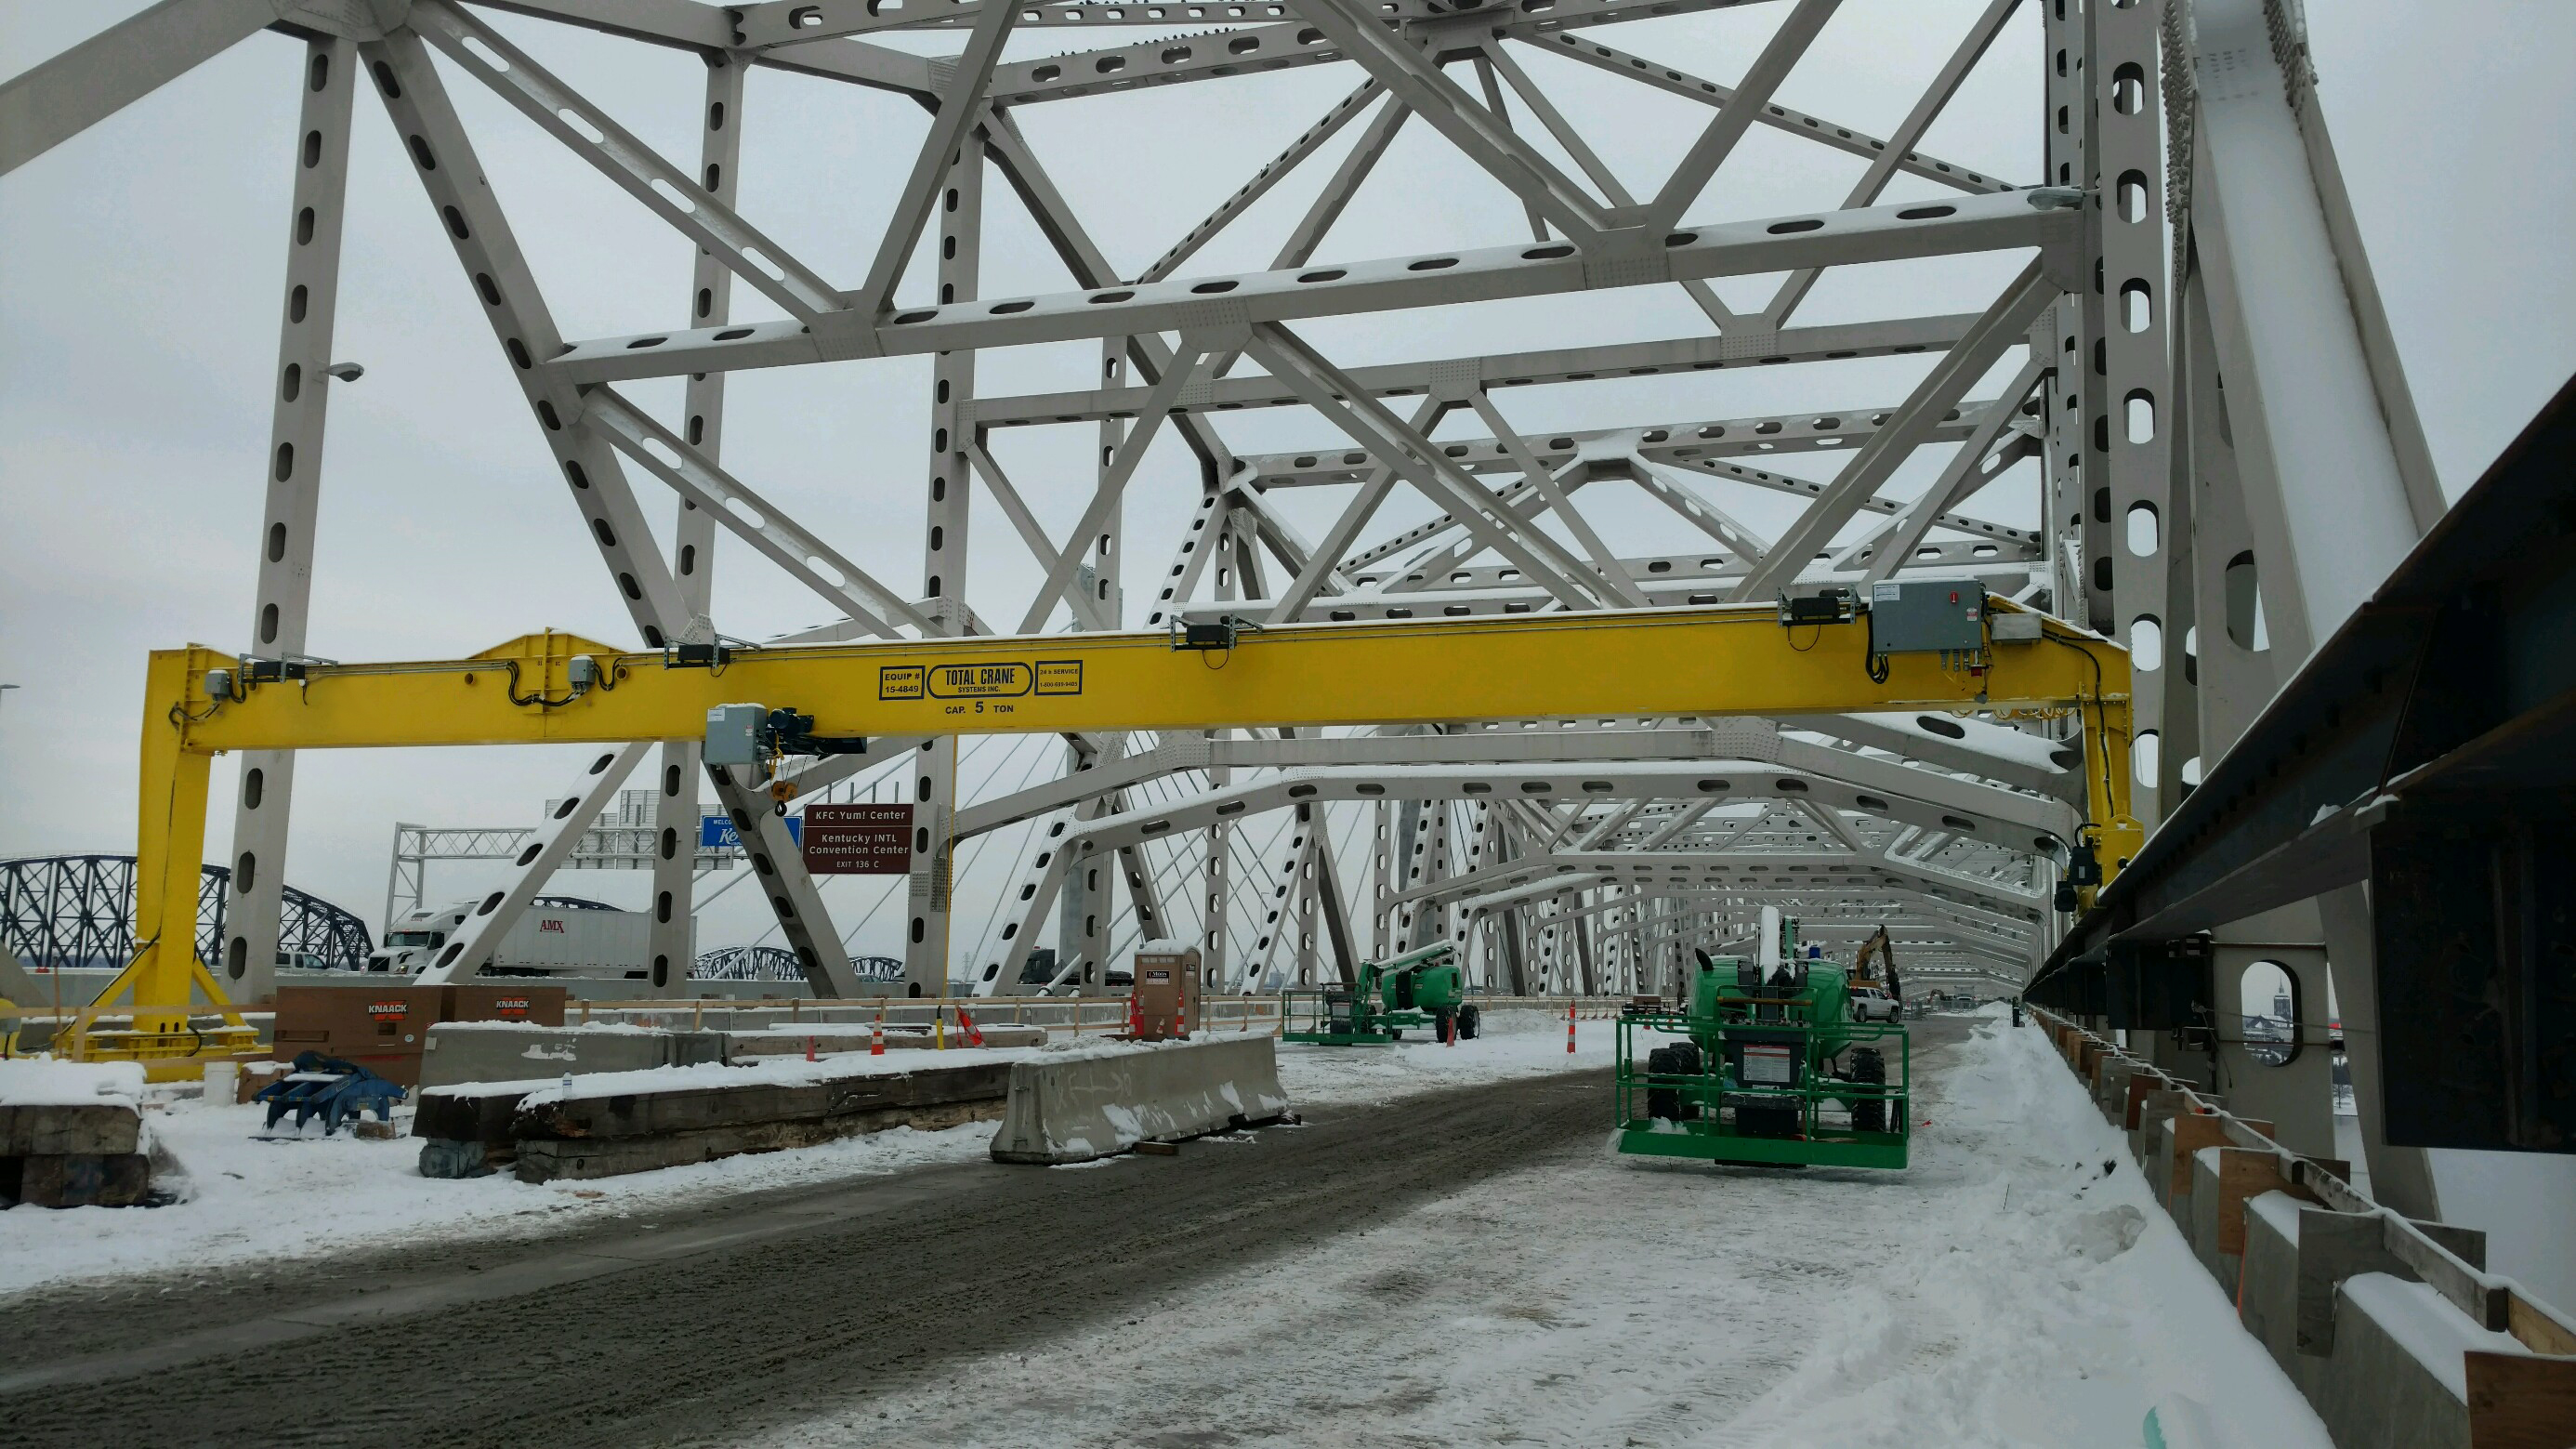 Munck Cranes Full Gantry utilized in bridge construction